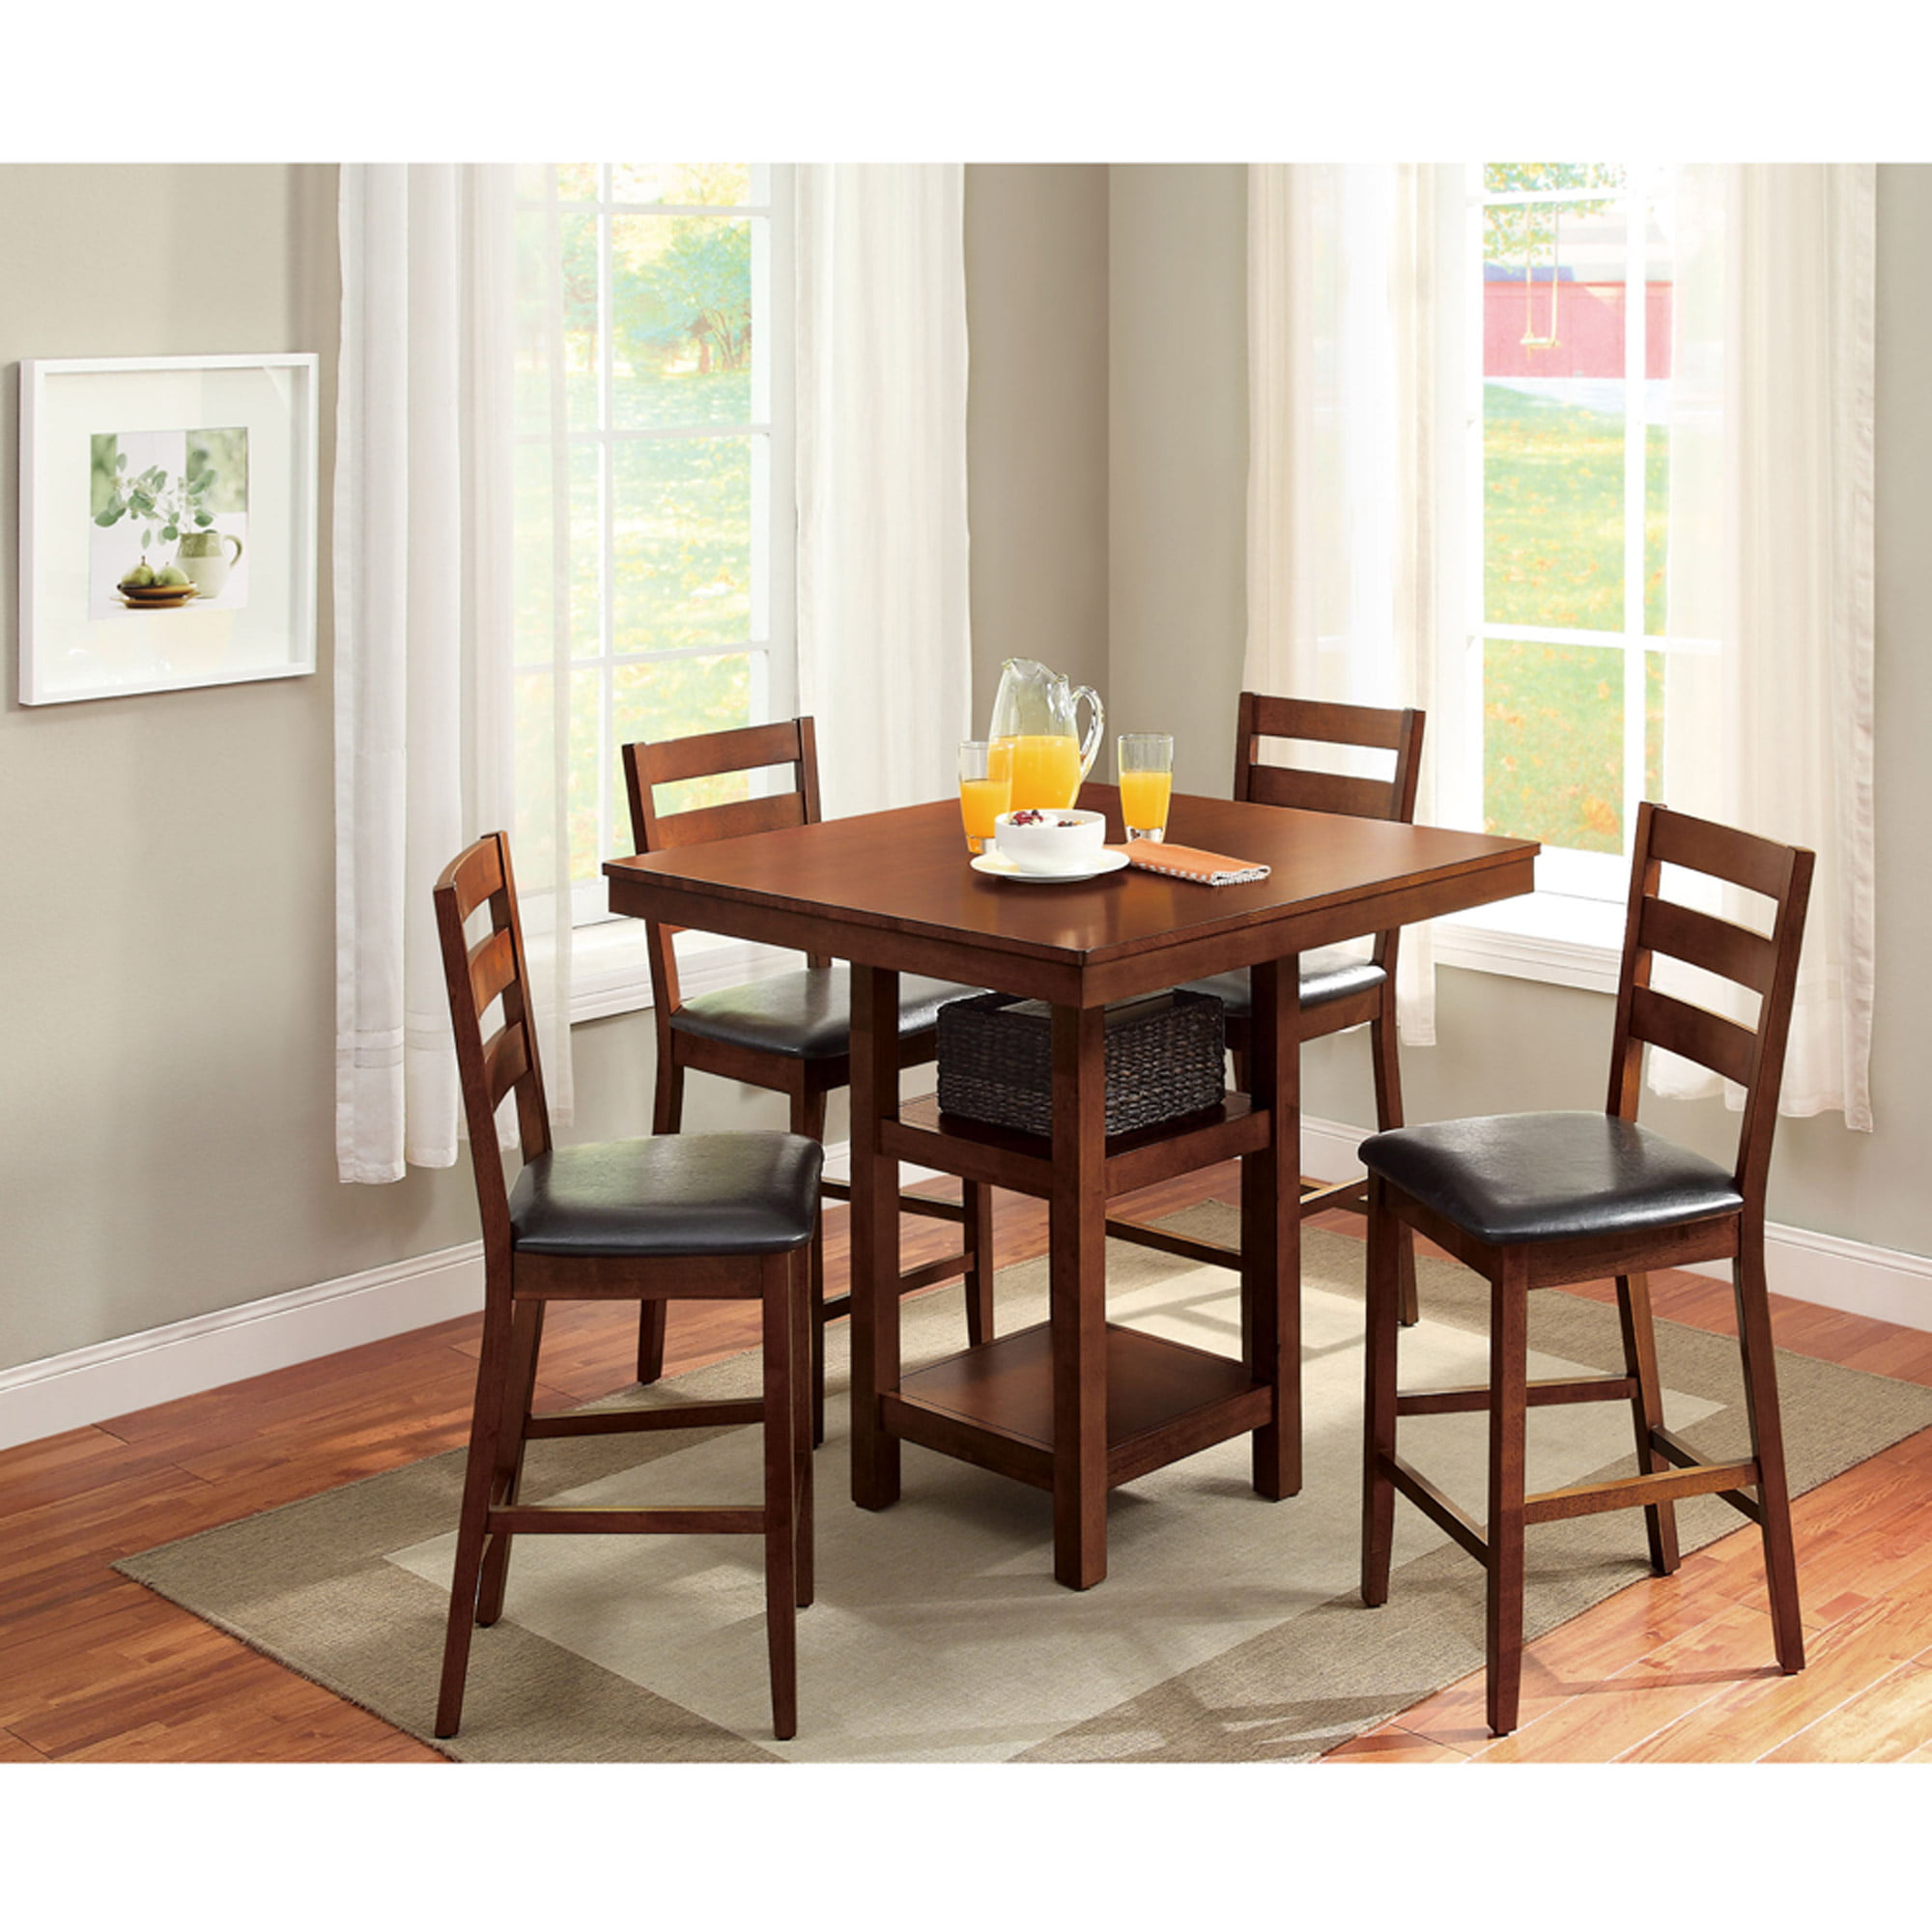 Walmart Kitchen Tables: Mainstays Dining Table, Espresso